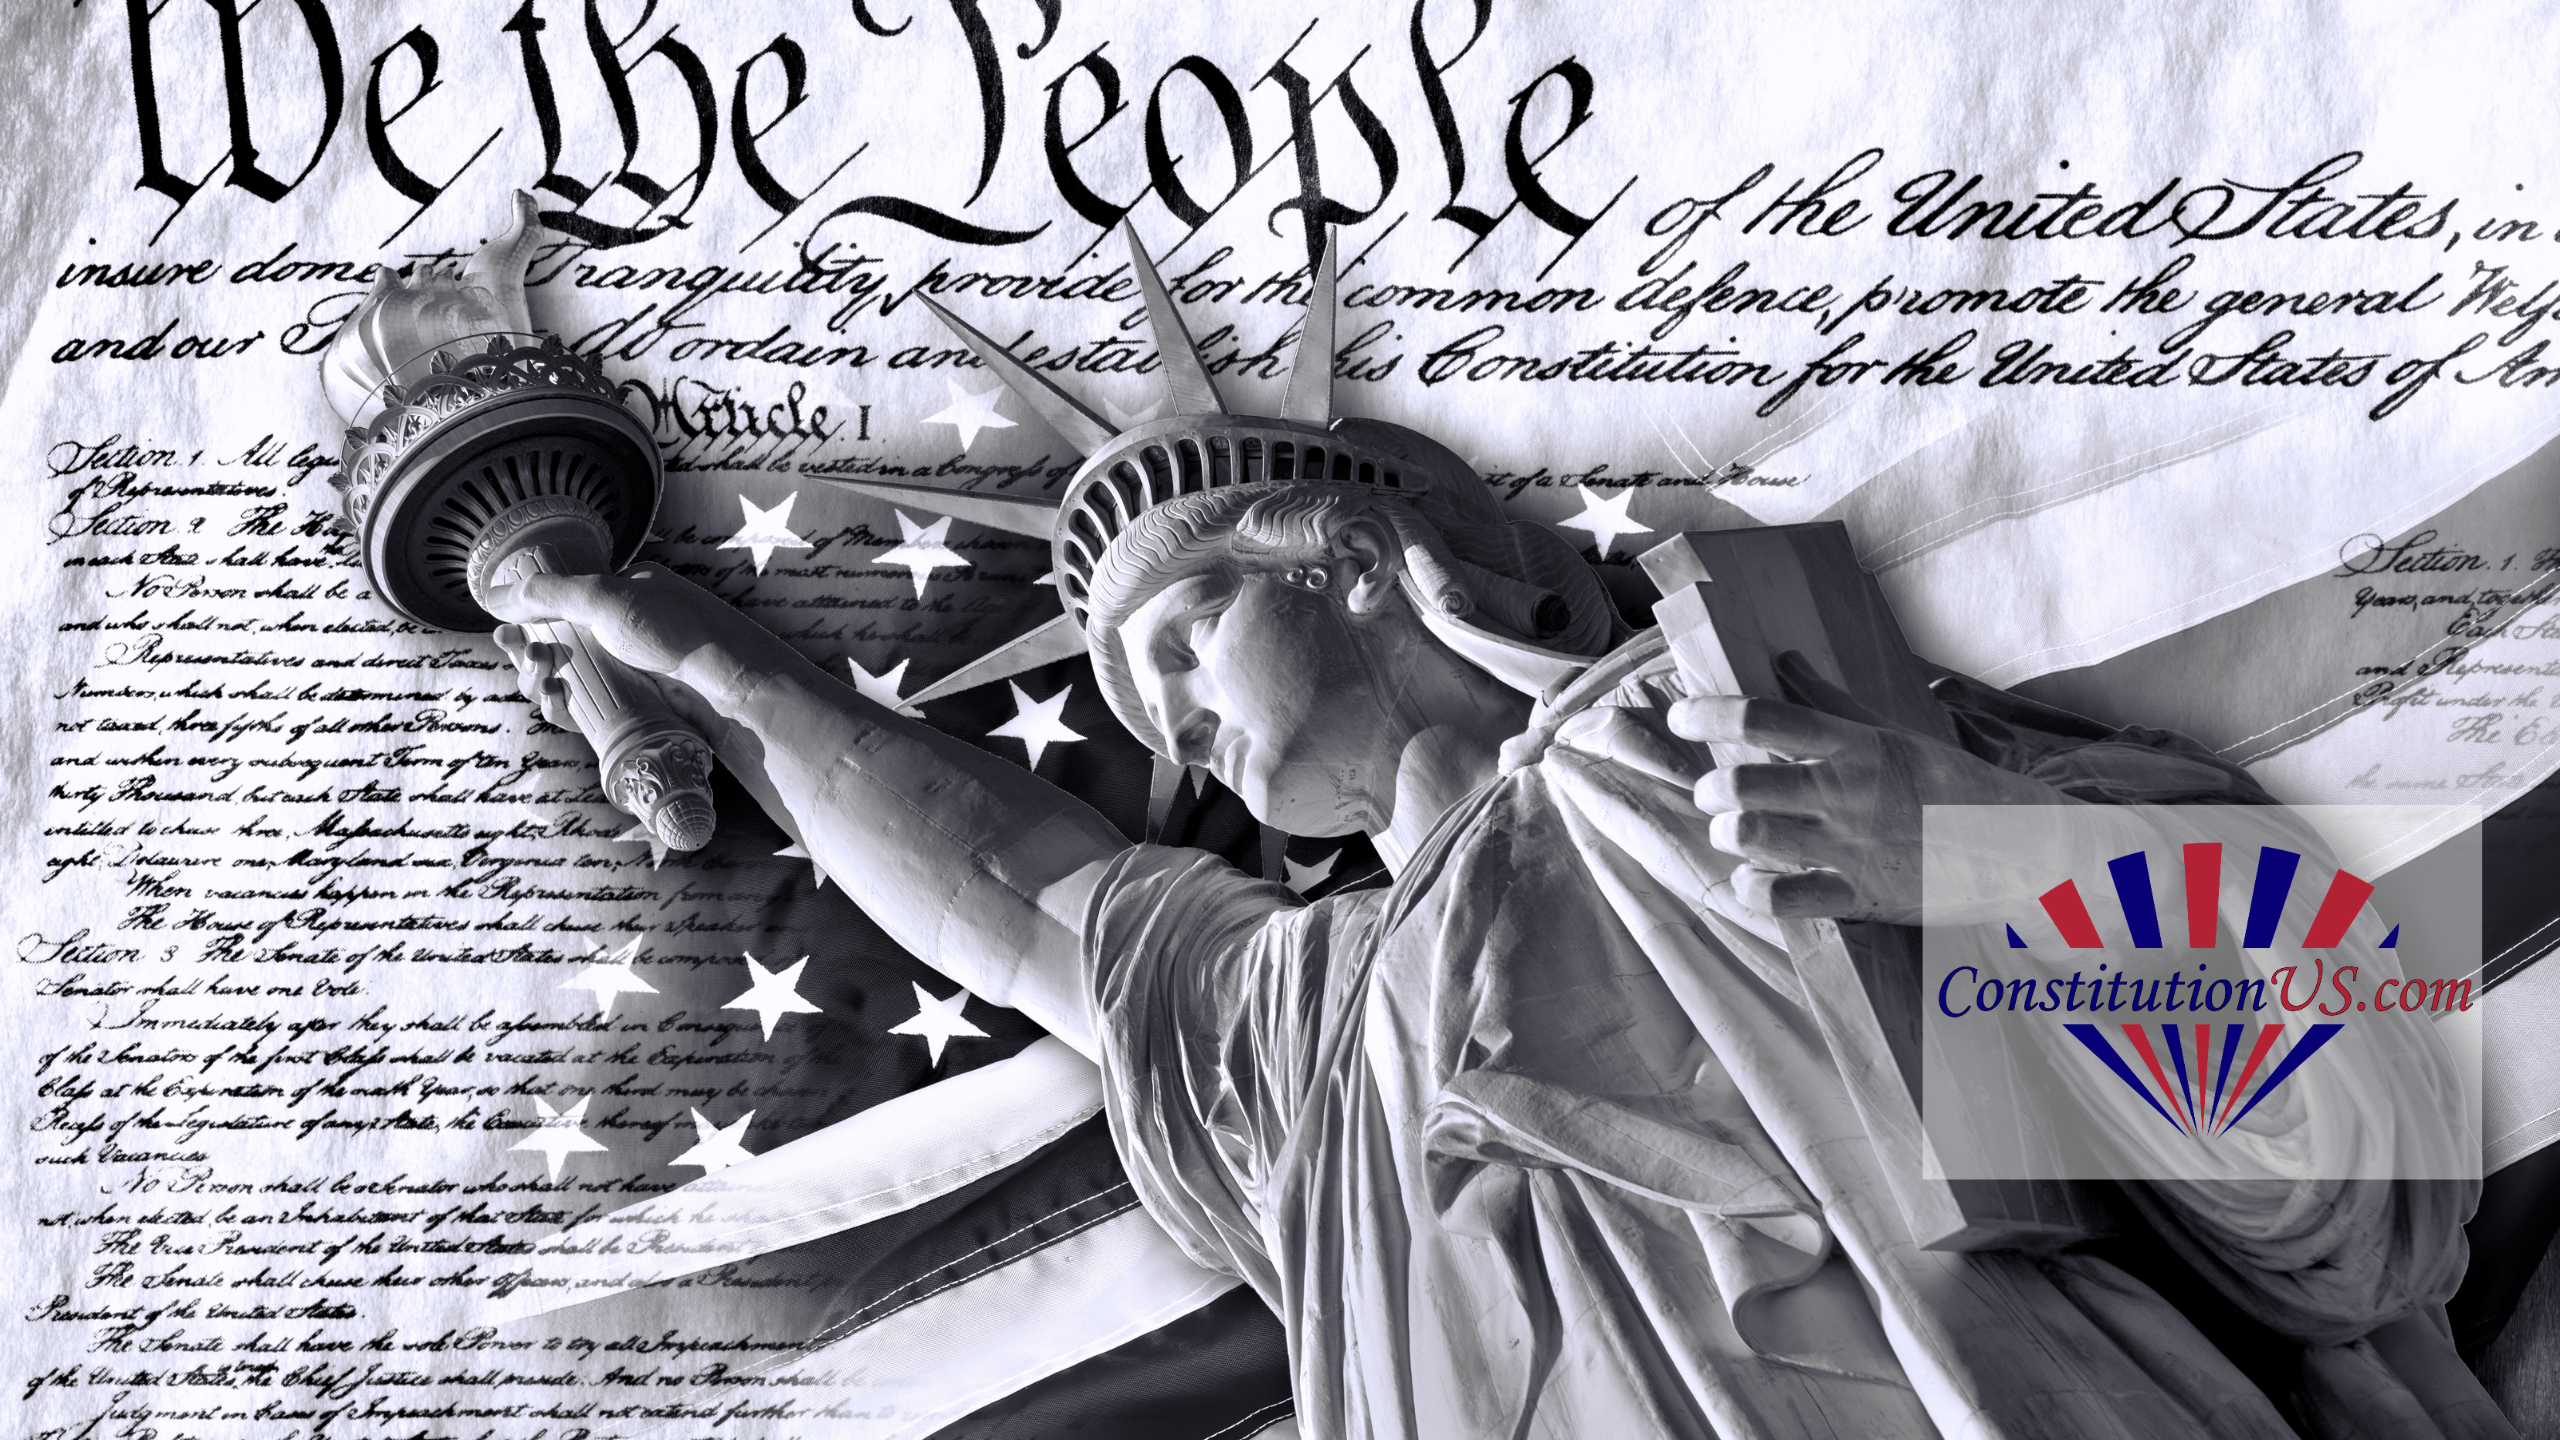 Statue of Liberty with US Constitution